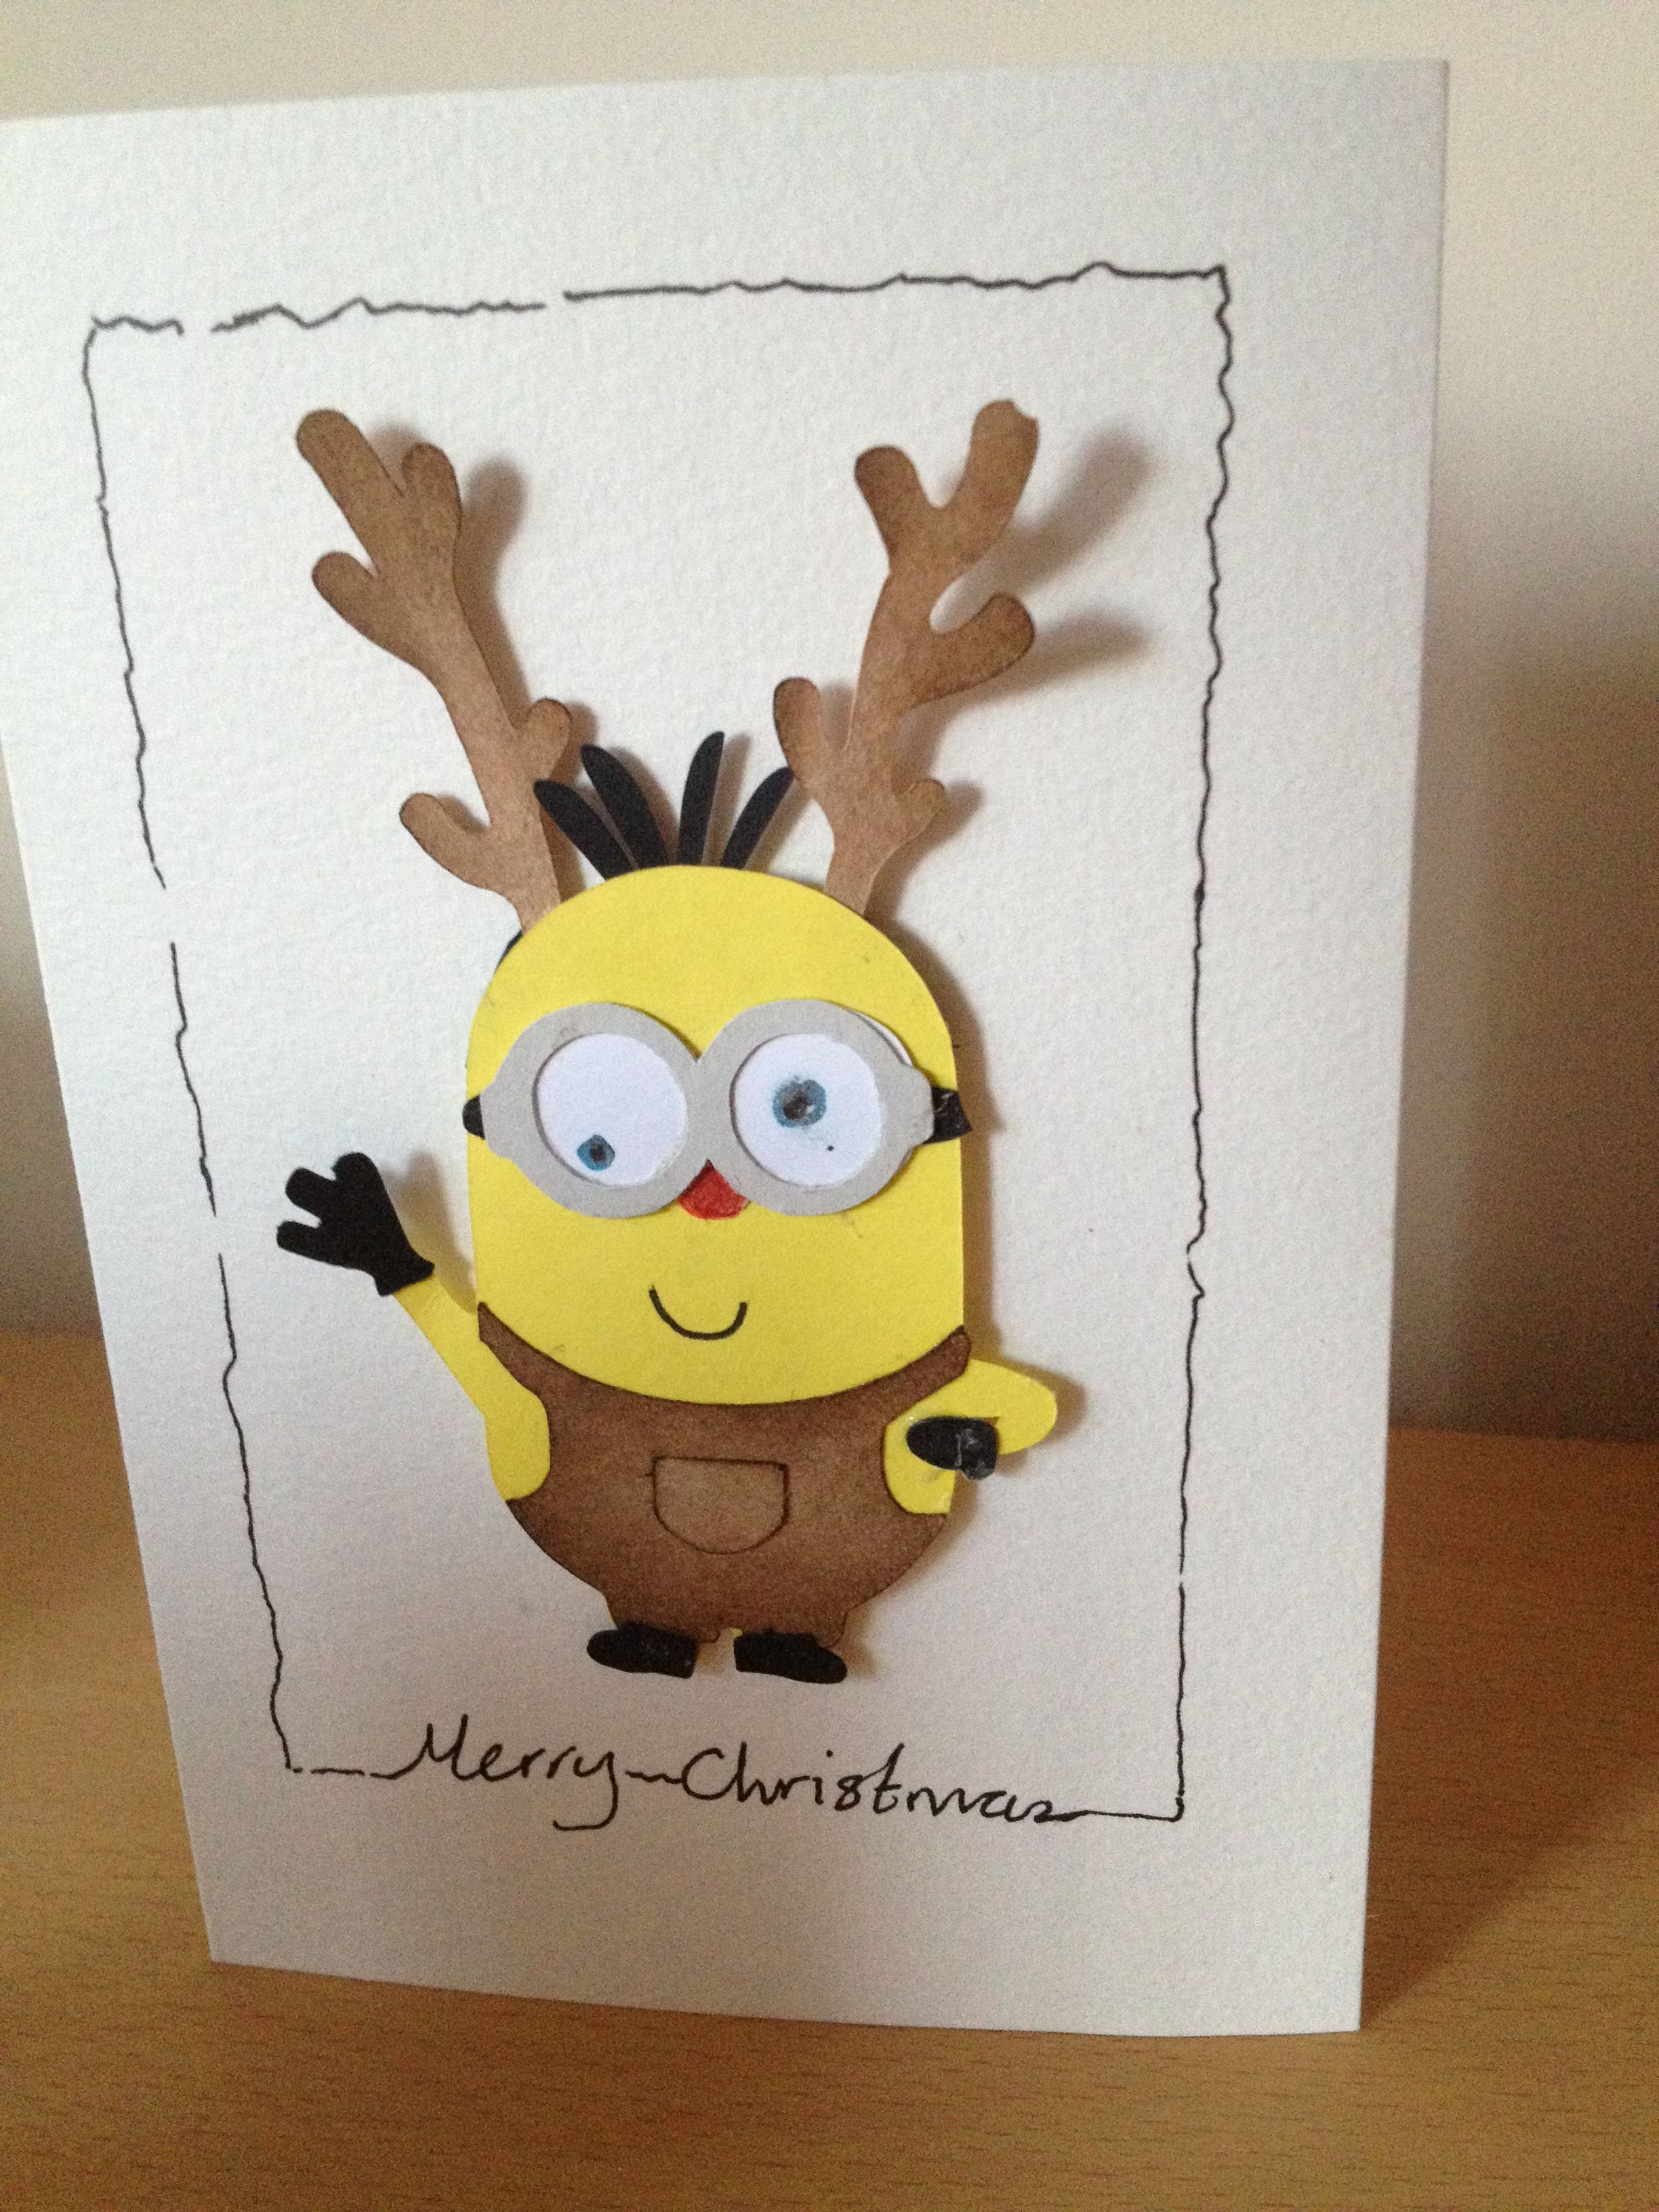 The Perfect Card For My Boyfriend Who Loves Minions And Reindeers Childrens Christmas Cards Minion Card Minion Christmas